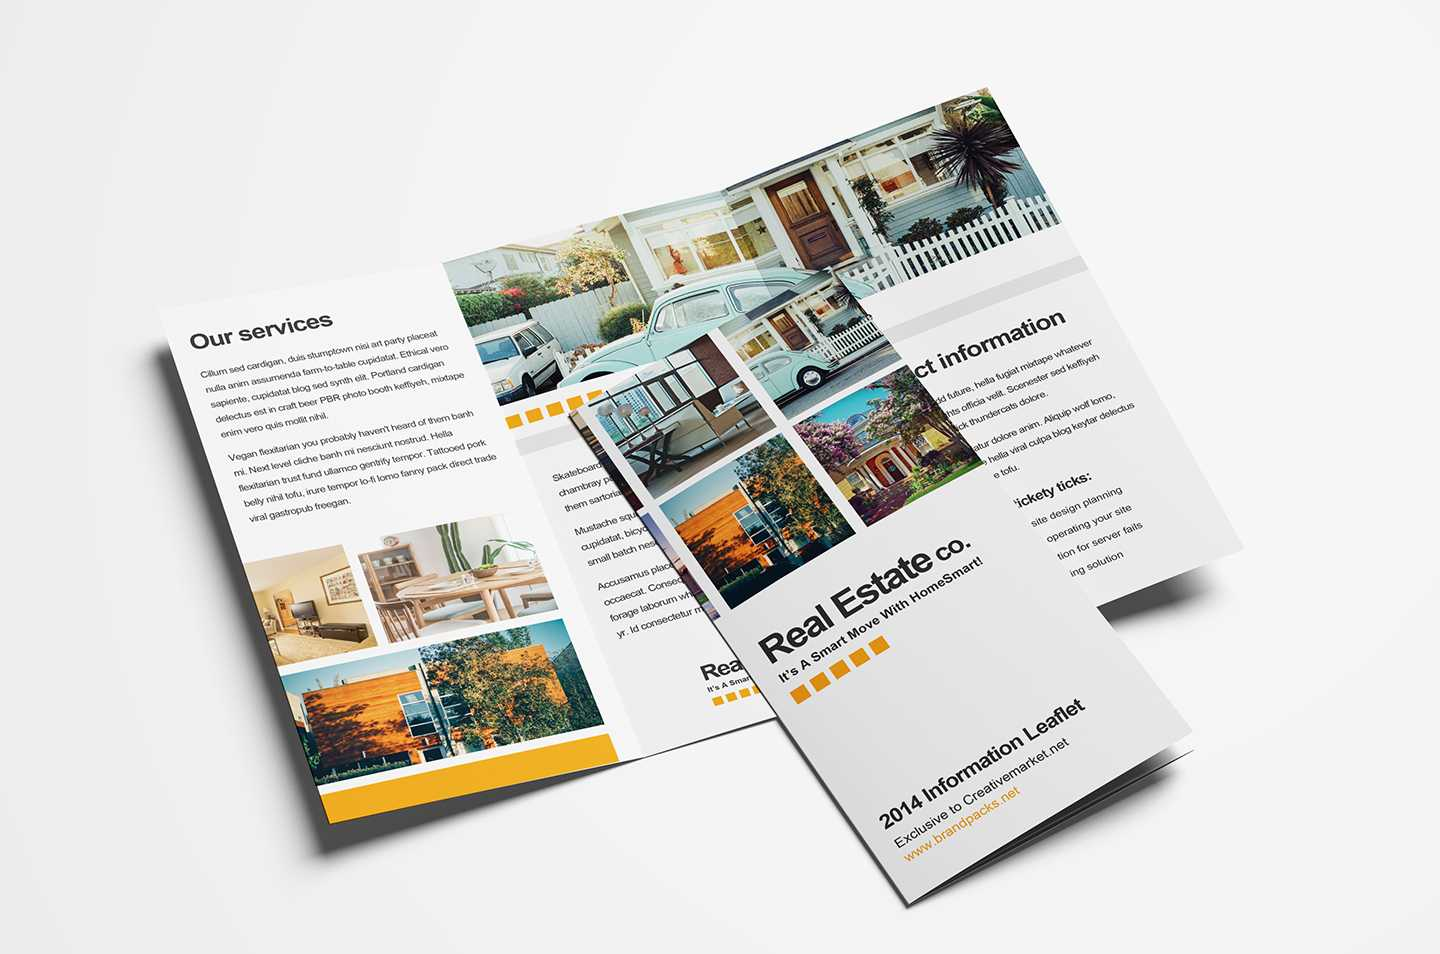 Free Real Estate Trifold Brochure Template In Psd, Ai With Regard To Real Estate Brochure Templates Psd Free Download